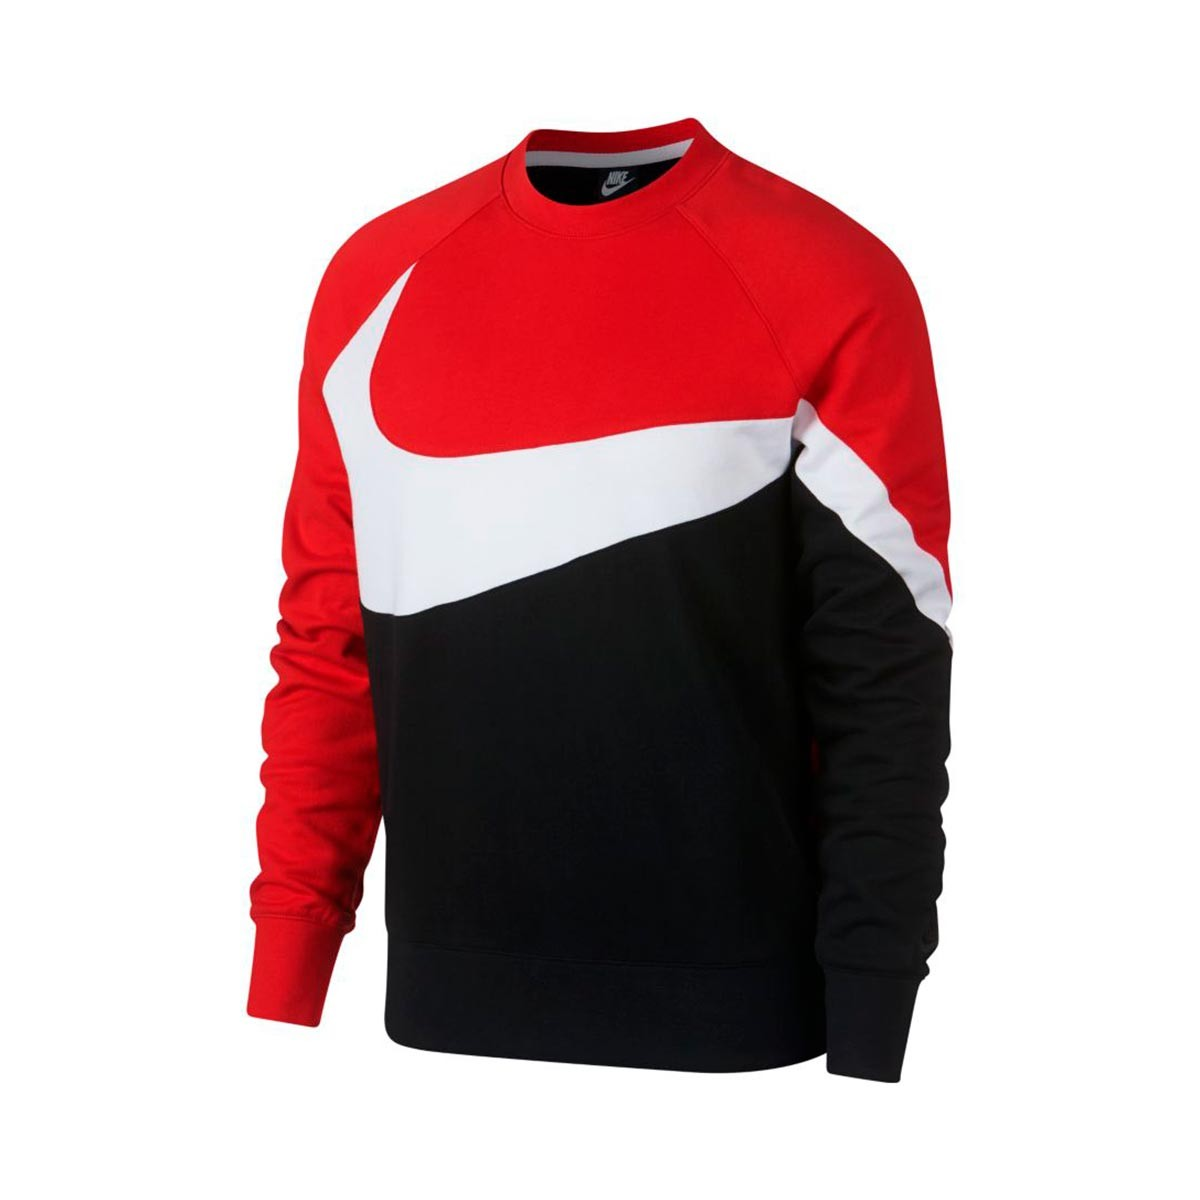 acidez inundar Corea  Sudadera Nike Sportswear 2019 Black-White-University red-Black - Tienda de fútbol  Fútbol Emotion